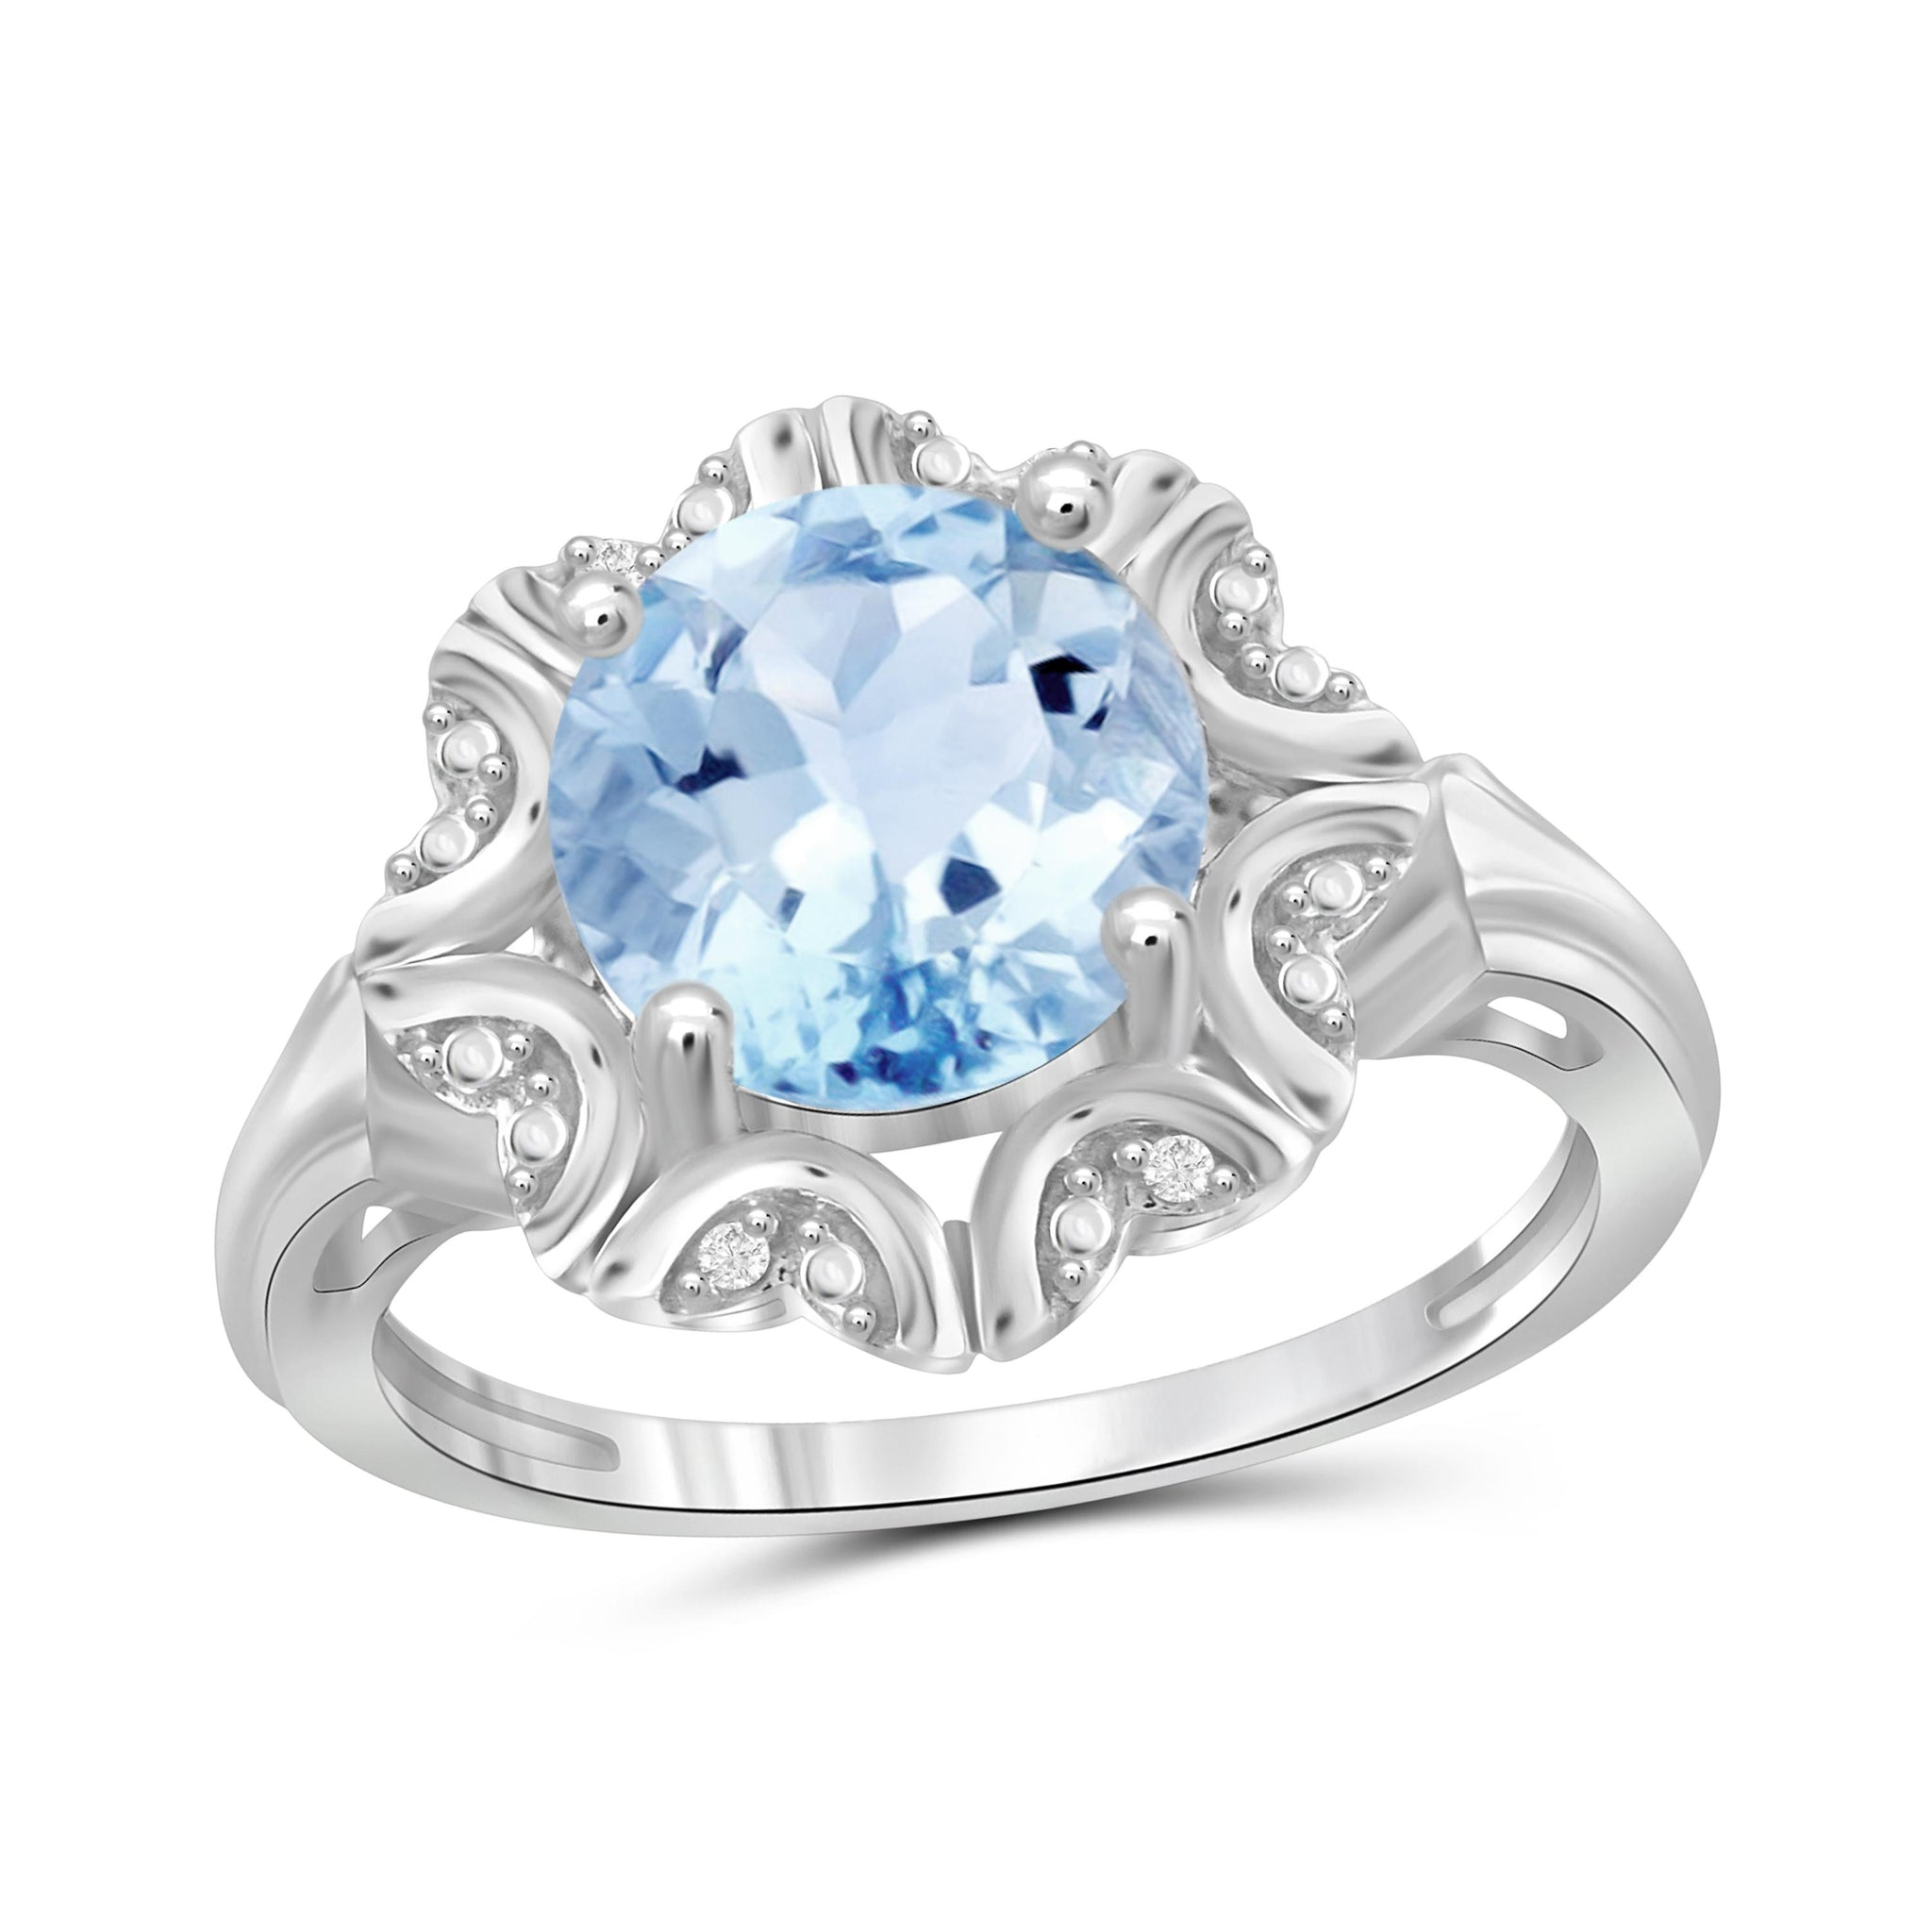 JewelonFire 3 1/5 Carat T.G.W. Sky Blue Topaz And White Diamond Accent Sterling Silver Ring - Assorted Colors